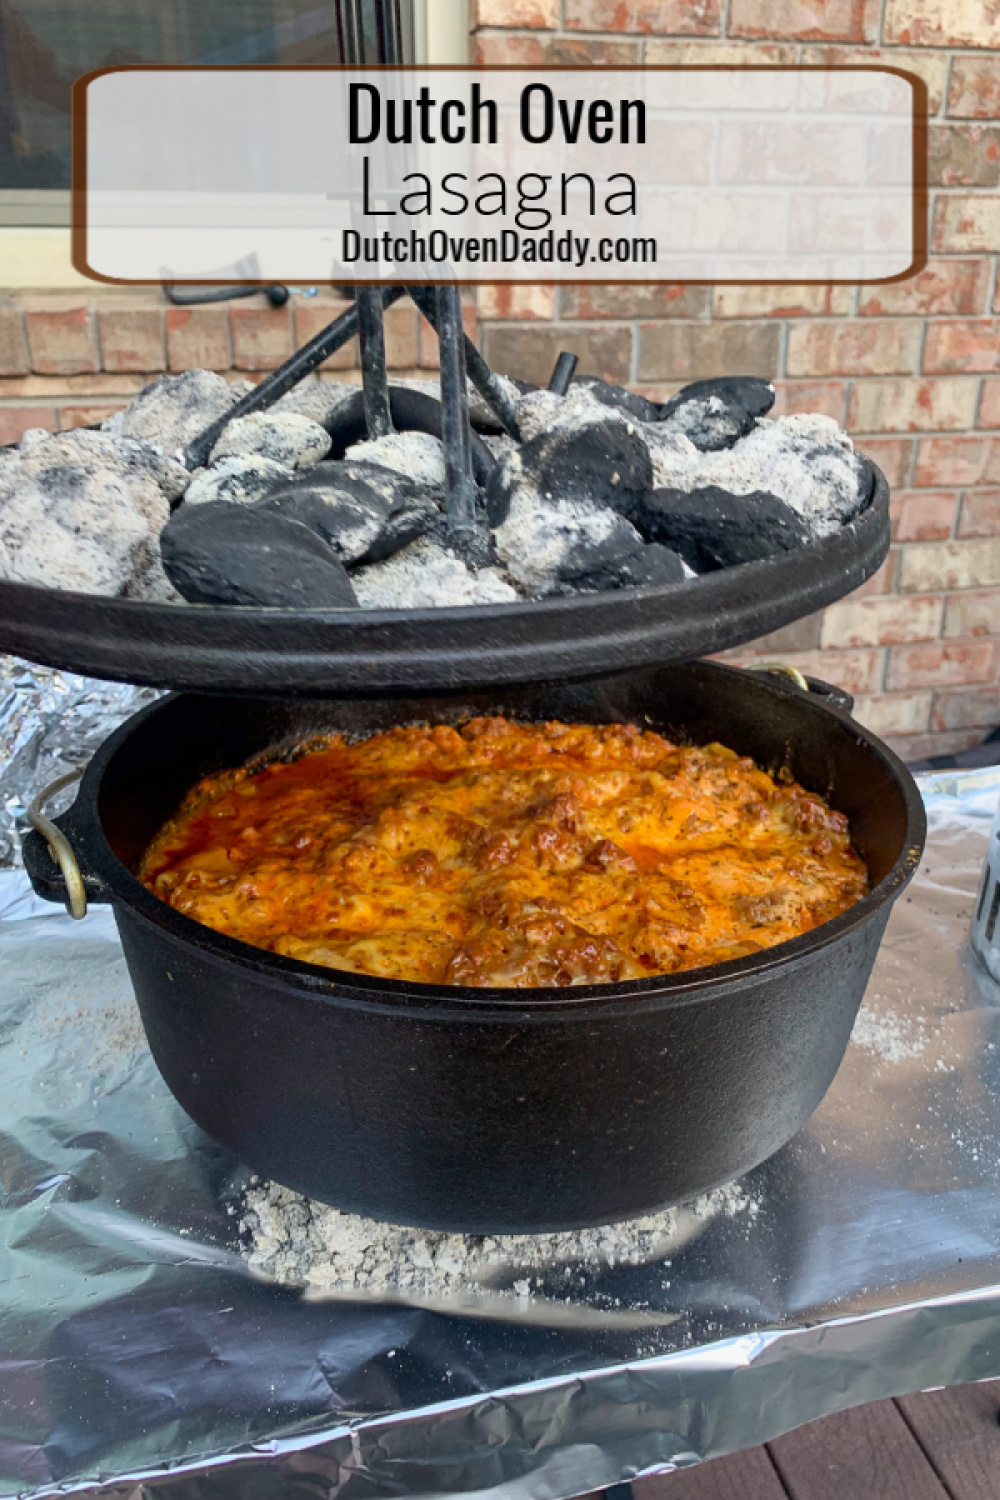 The lid being raised off the camp oven with the charcoal on top revealing the cooked lasagna.